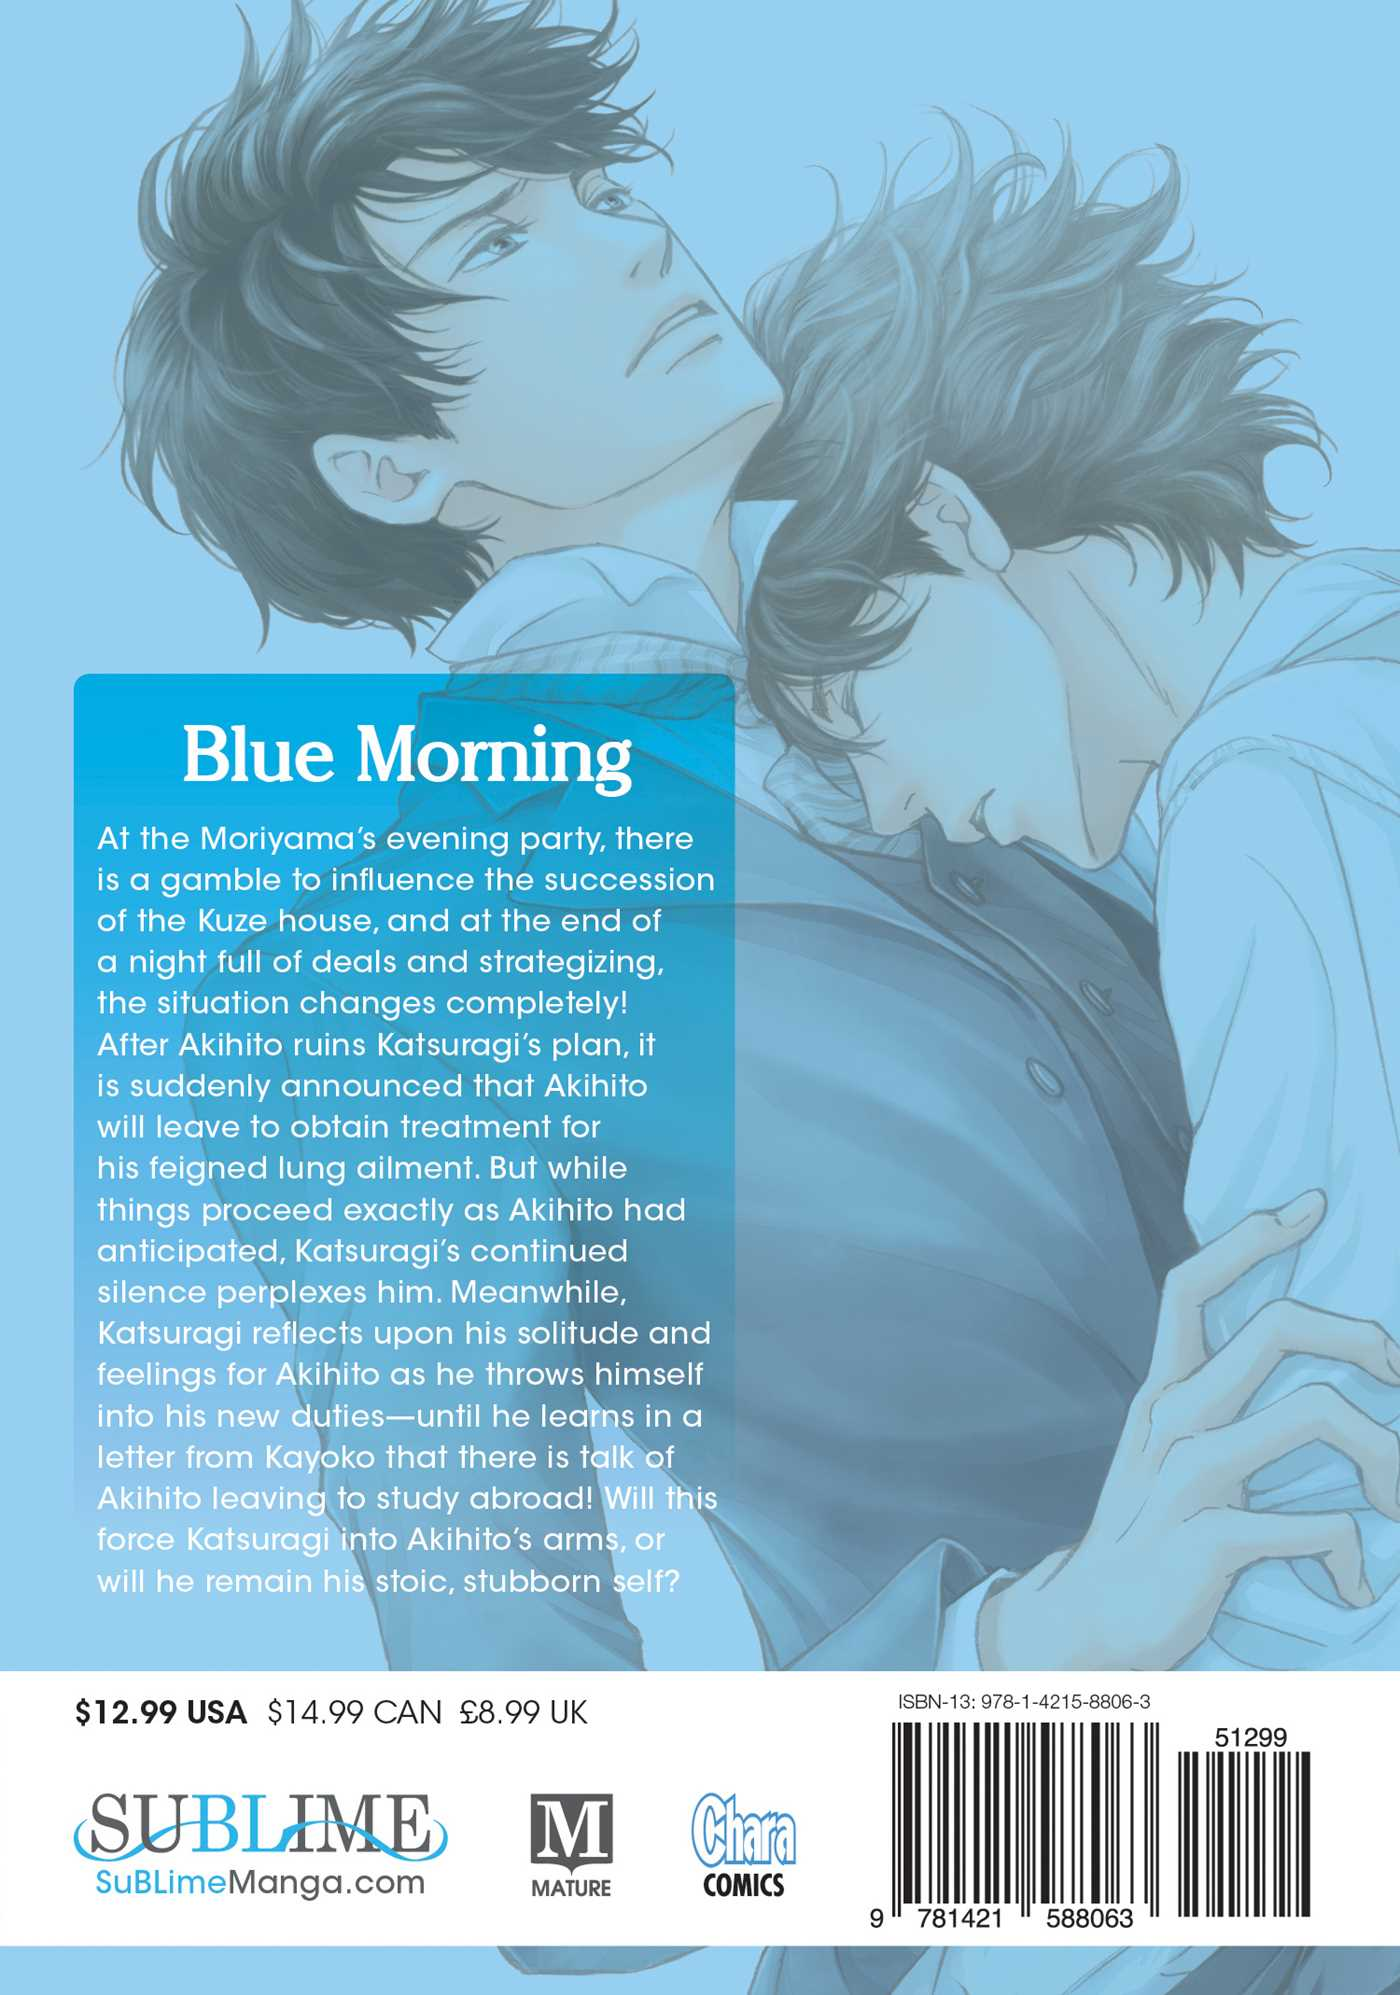 Blue morning vol 6 9781421588063 hr back